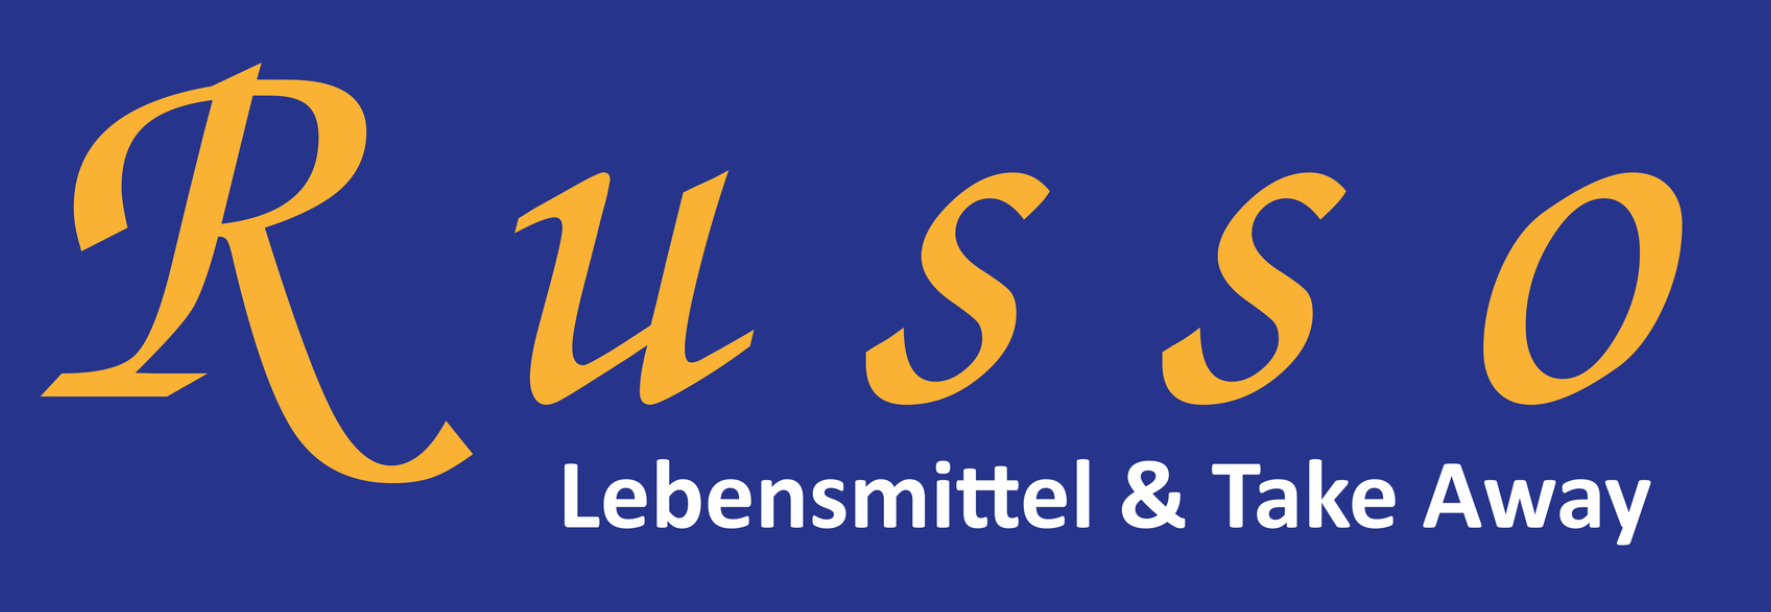 Russo Lebensmittel & Take Away